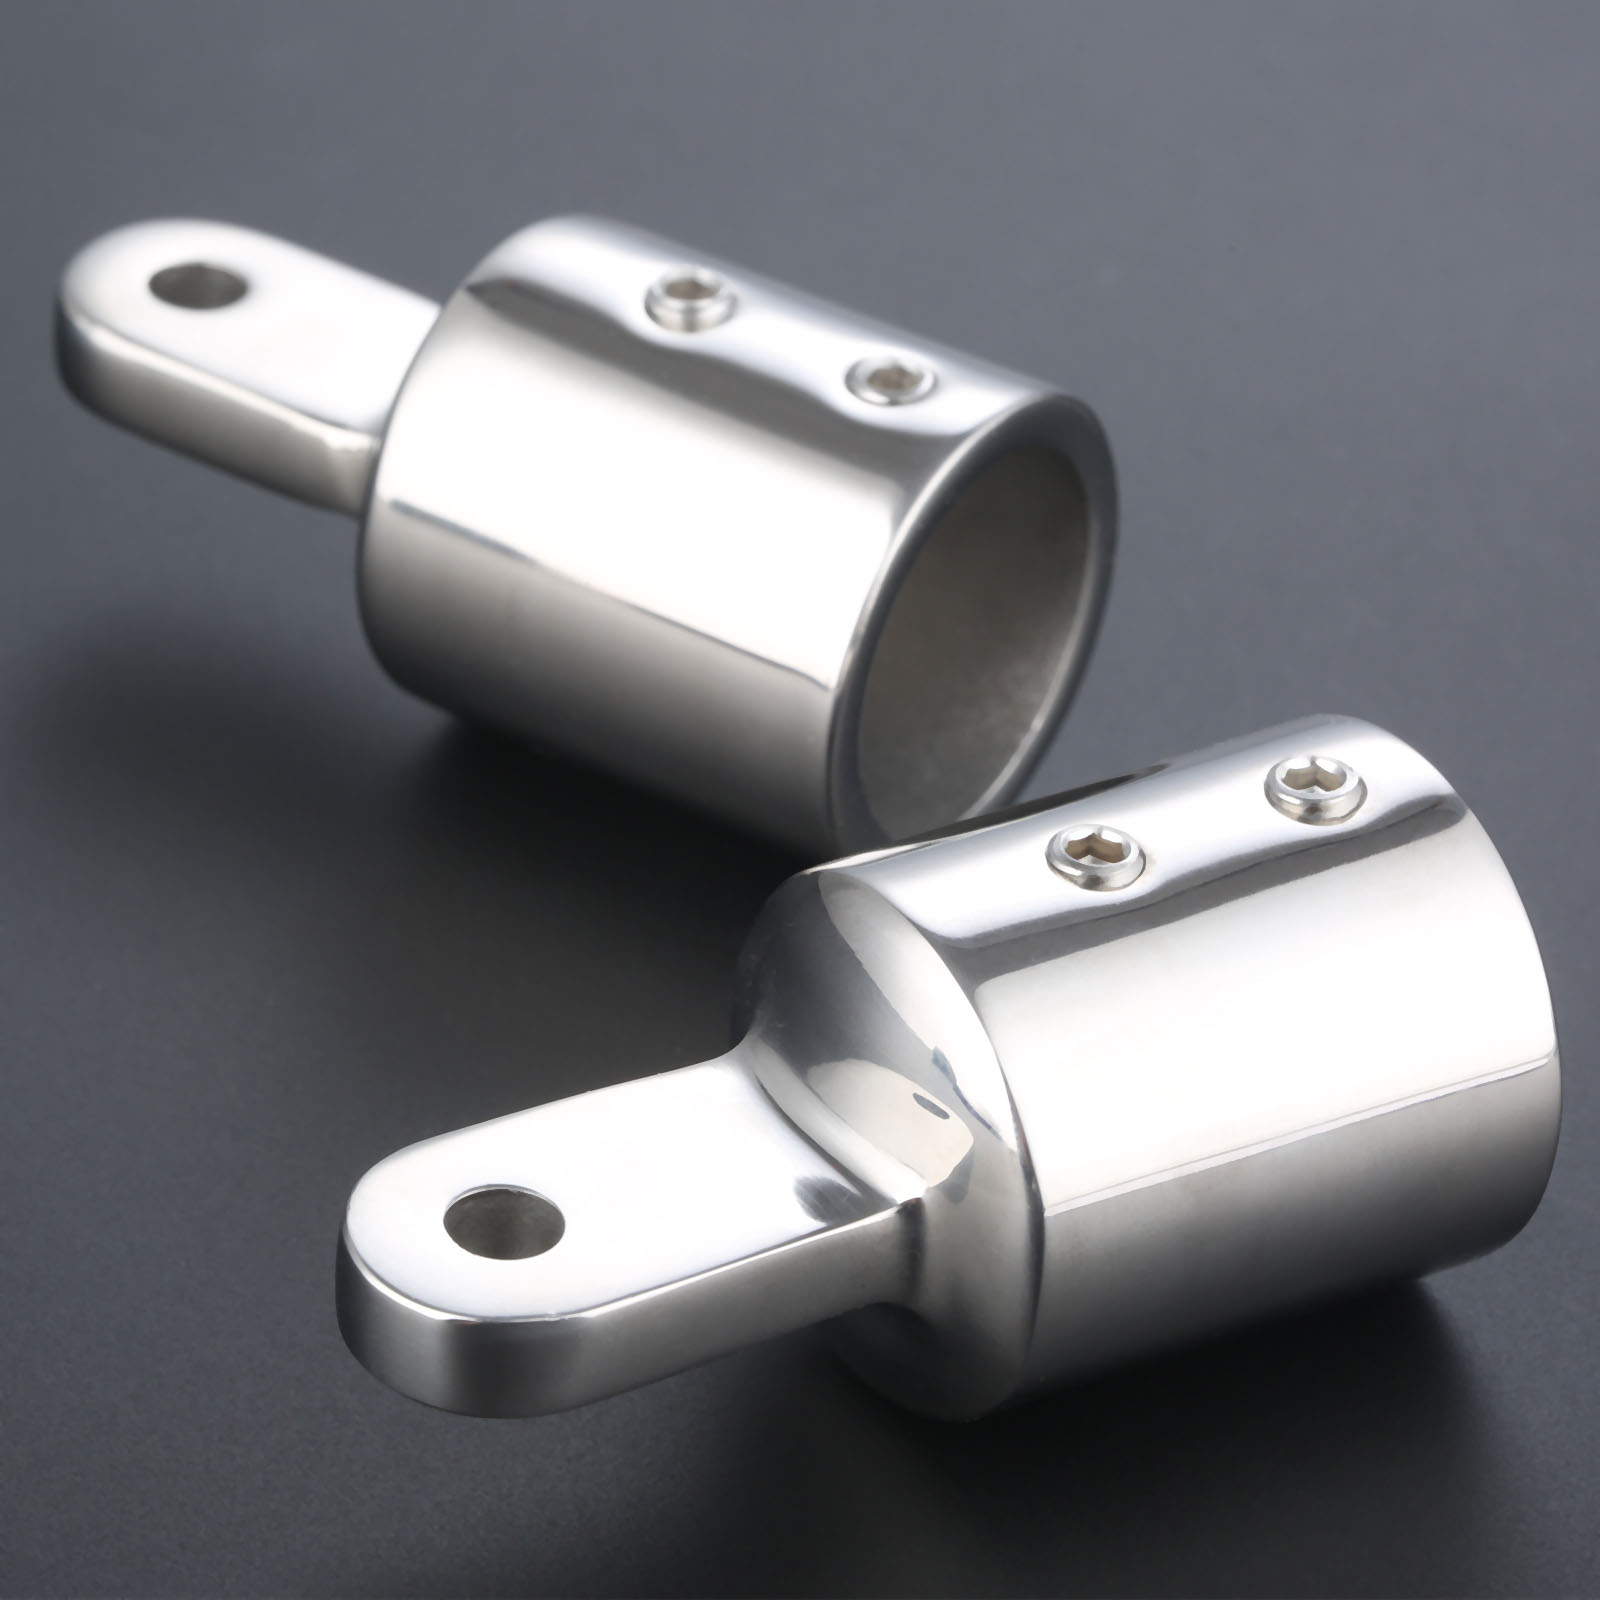 Set 3 Bow Bimini Top Fittings Fit 7//8/'/' Dock Hardware US Shipping High Quality